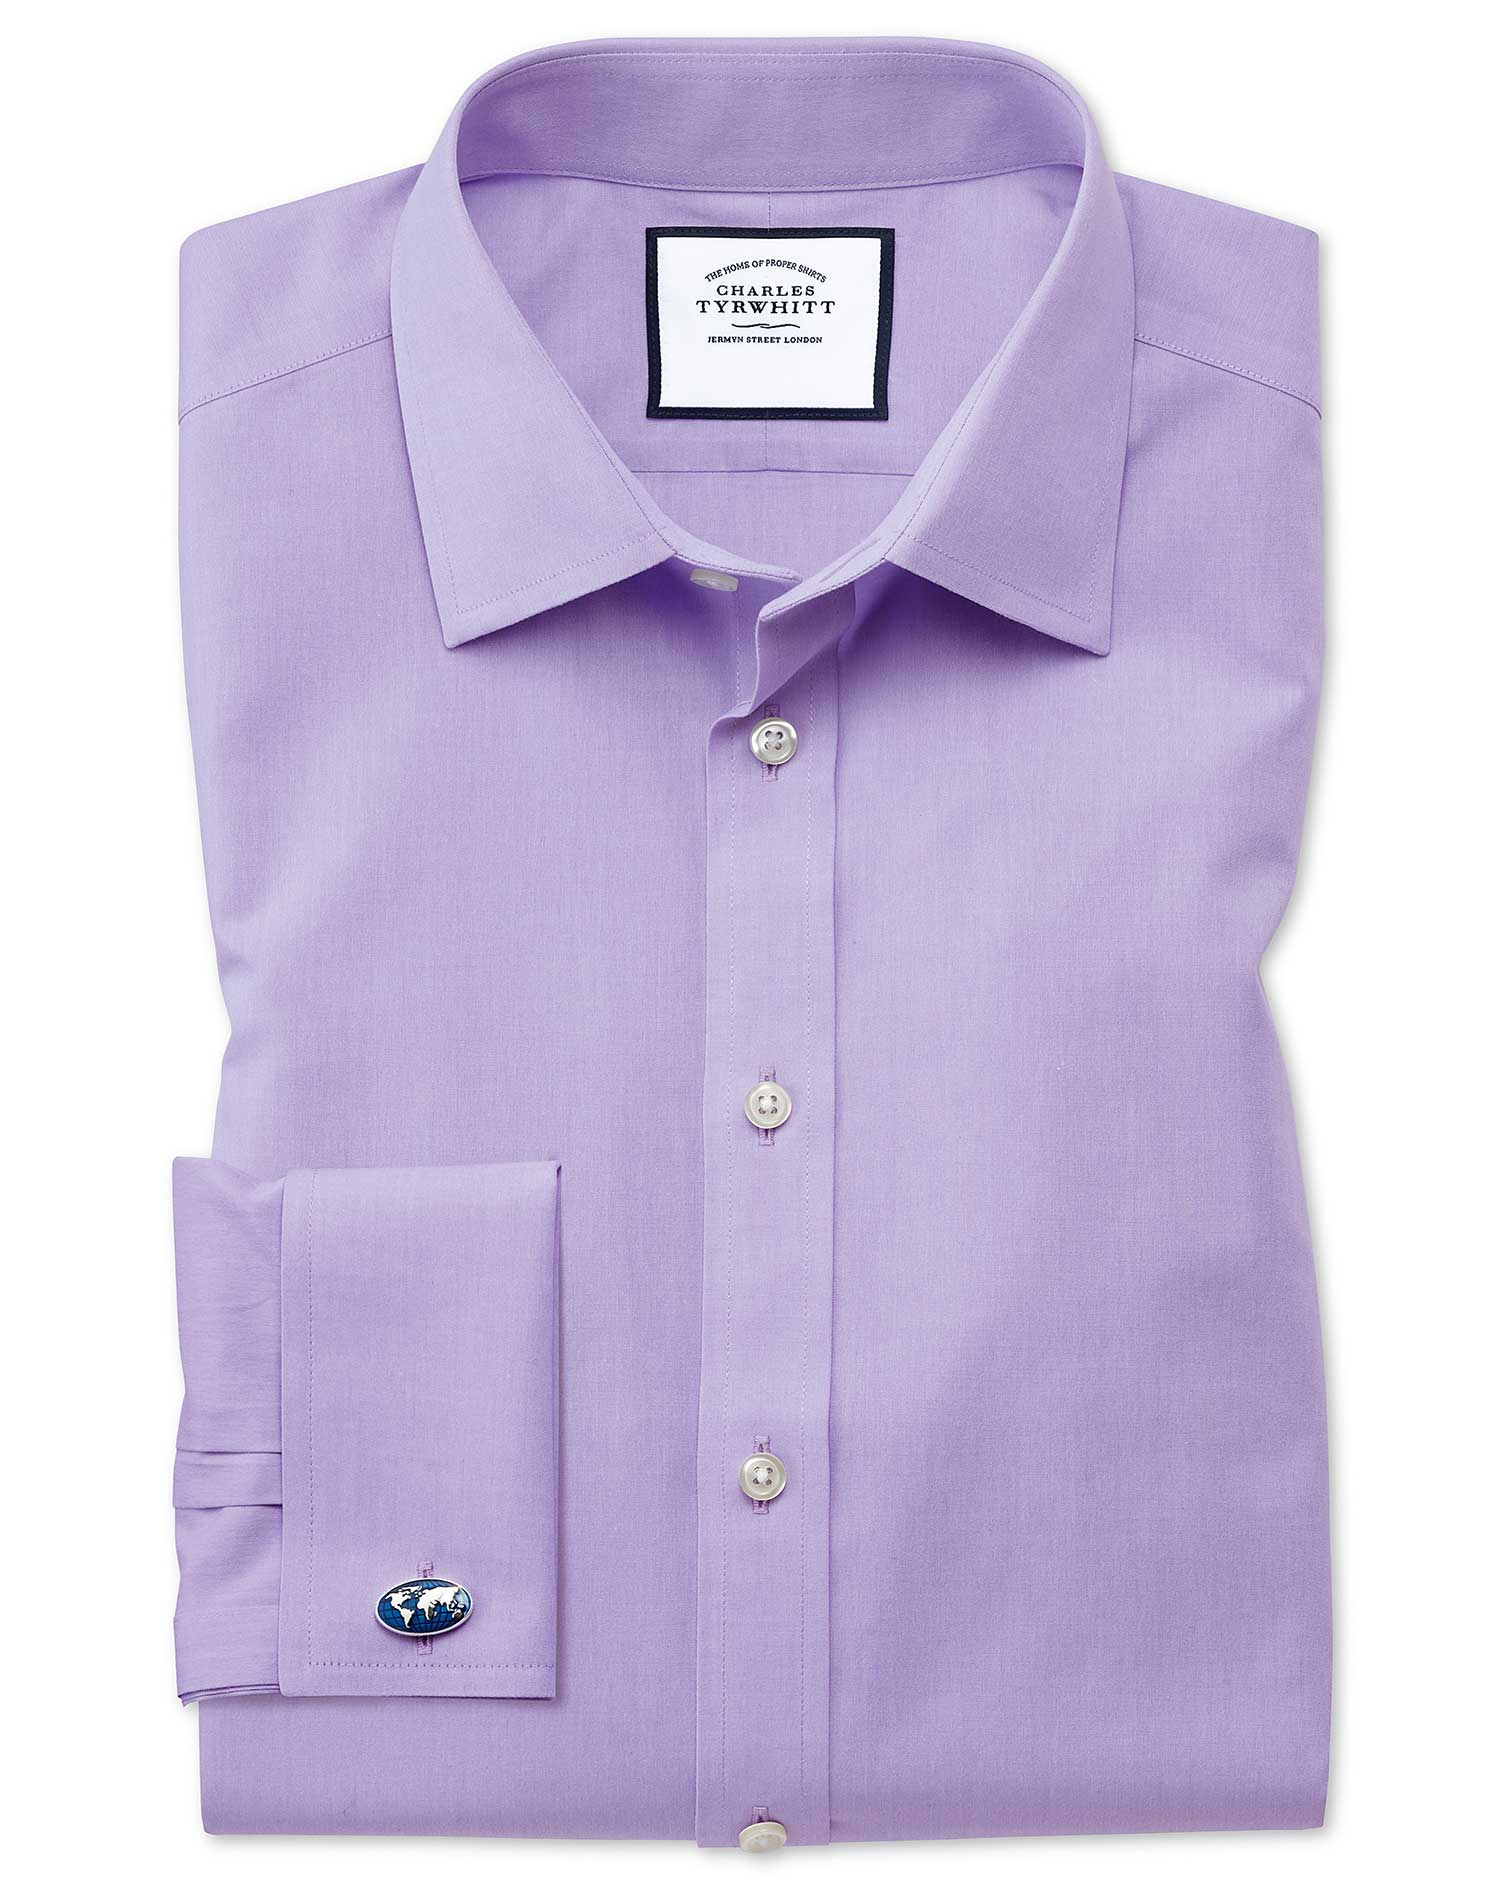 Classic Fit Non-Iron Poplin Lilac Cotton Formal Shirt Double Cuff Size 18/35 by Charles Tyrwhitt